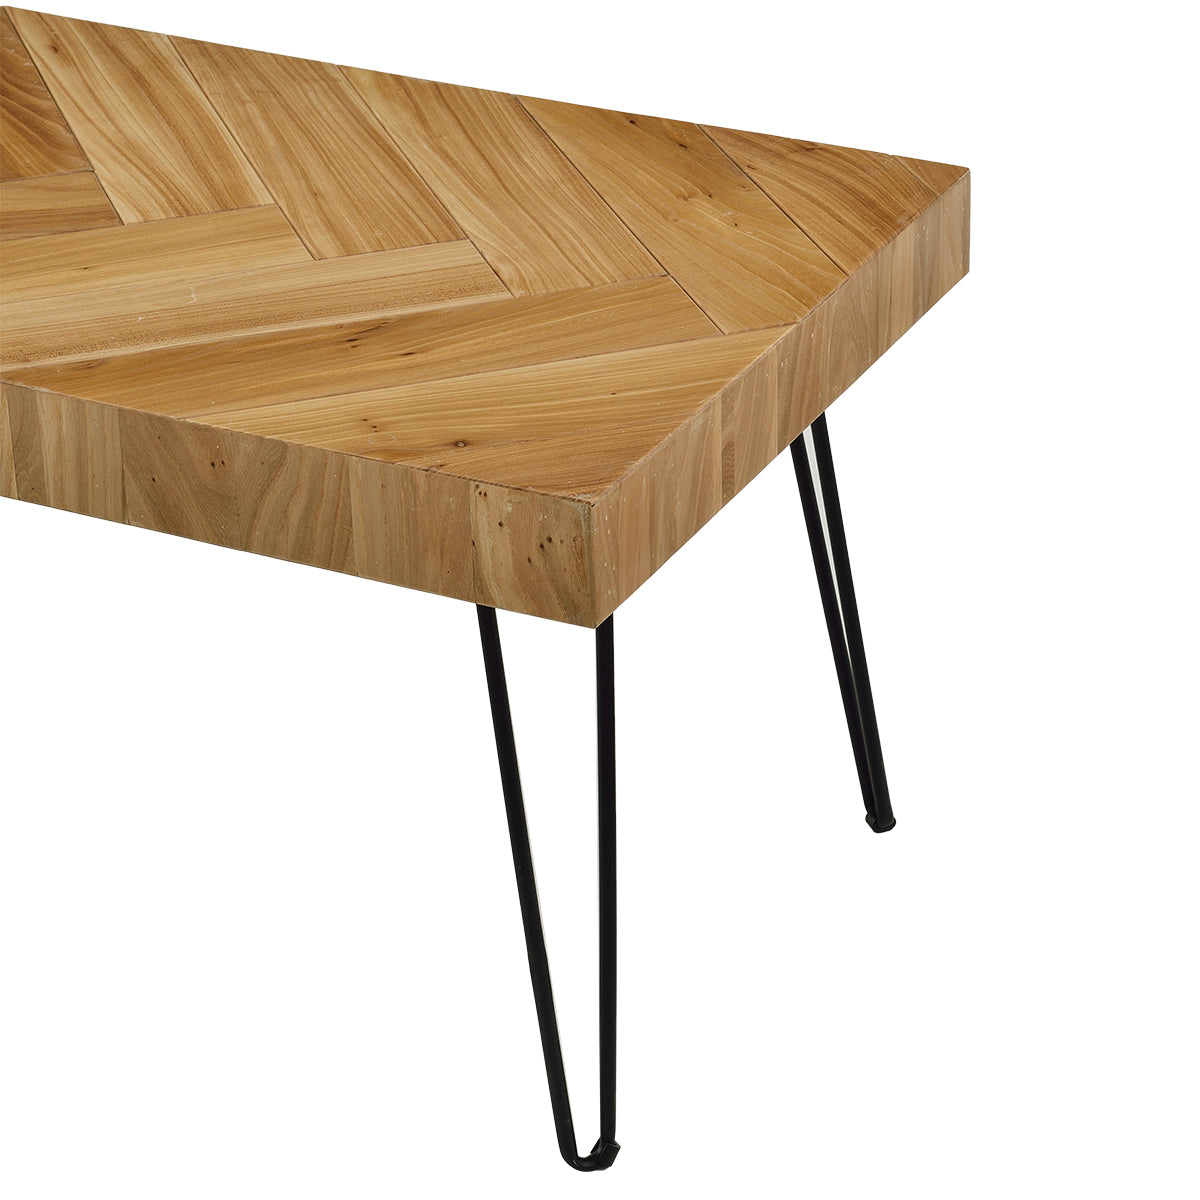 Modern Coffee Table Tea Table Cocktail Table for Living Room w/Chevron Pattern & Metal Hairpin Legs Glossy Finished Wood